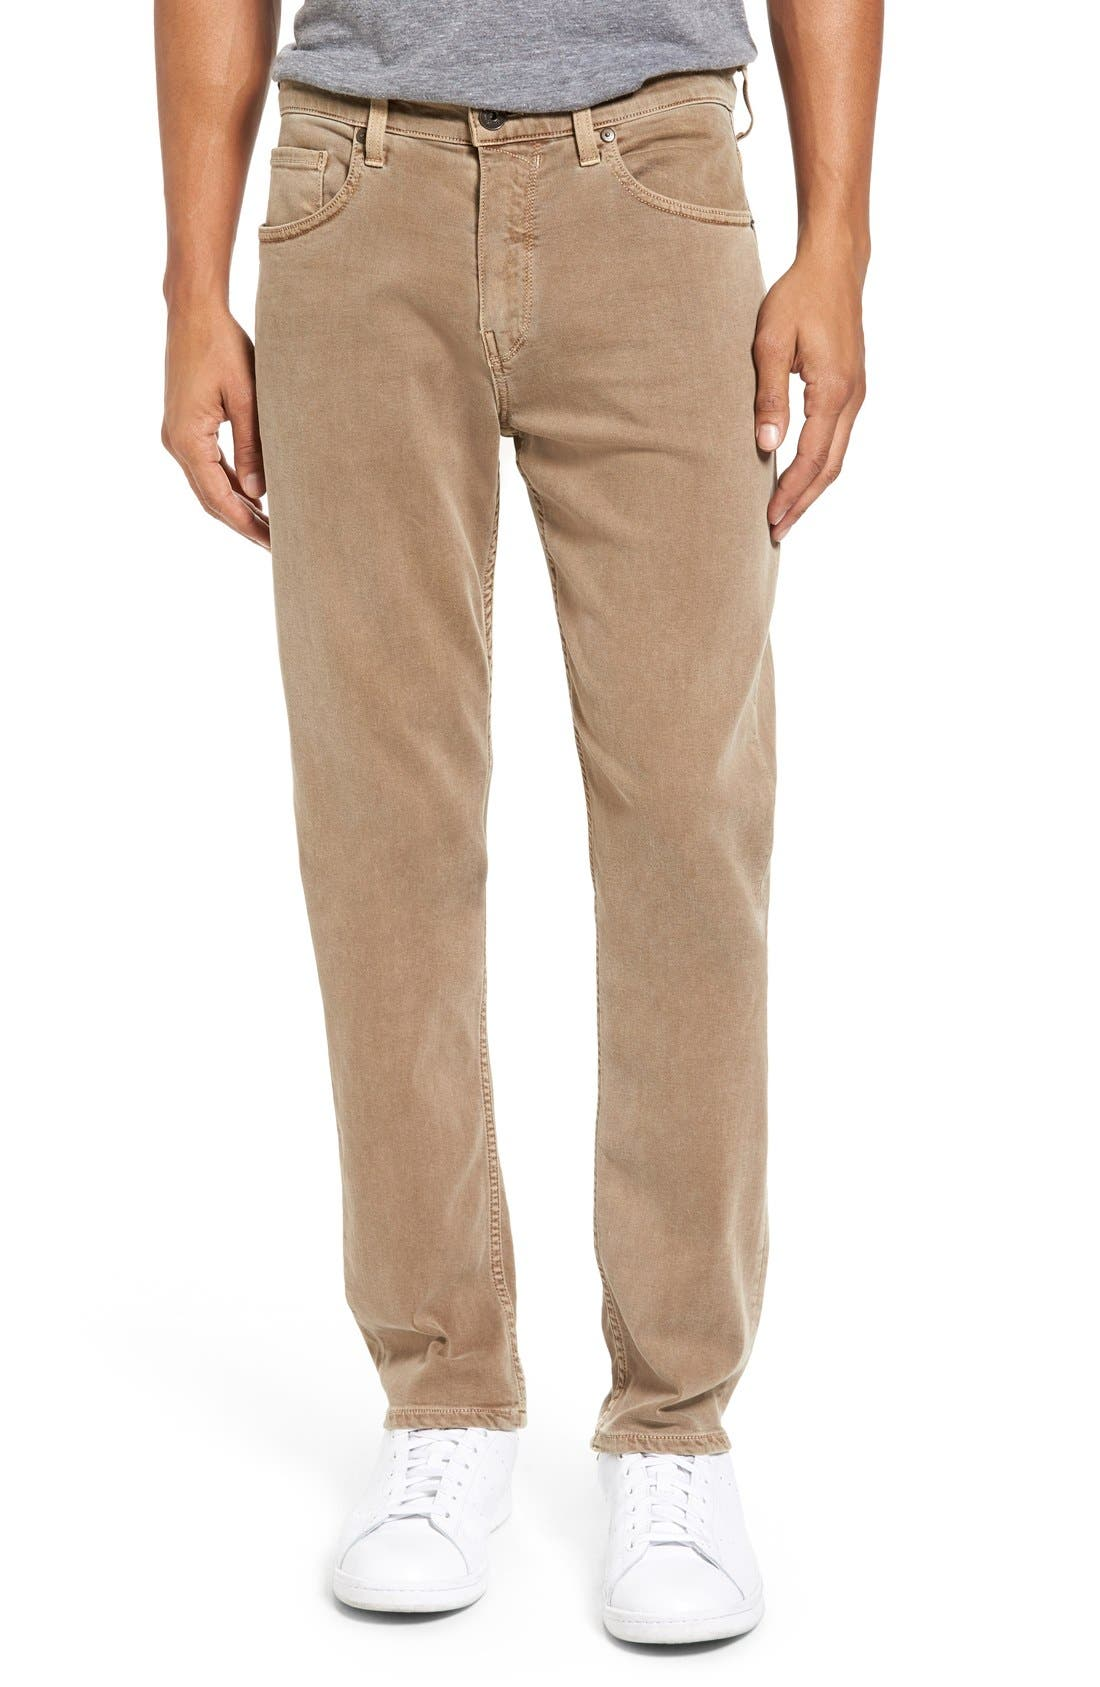 Transcend - Federal Slim Straight Leg Jeans,                         Main,                         color, Fennel Seed